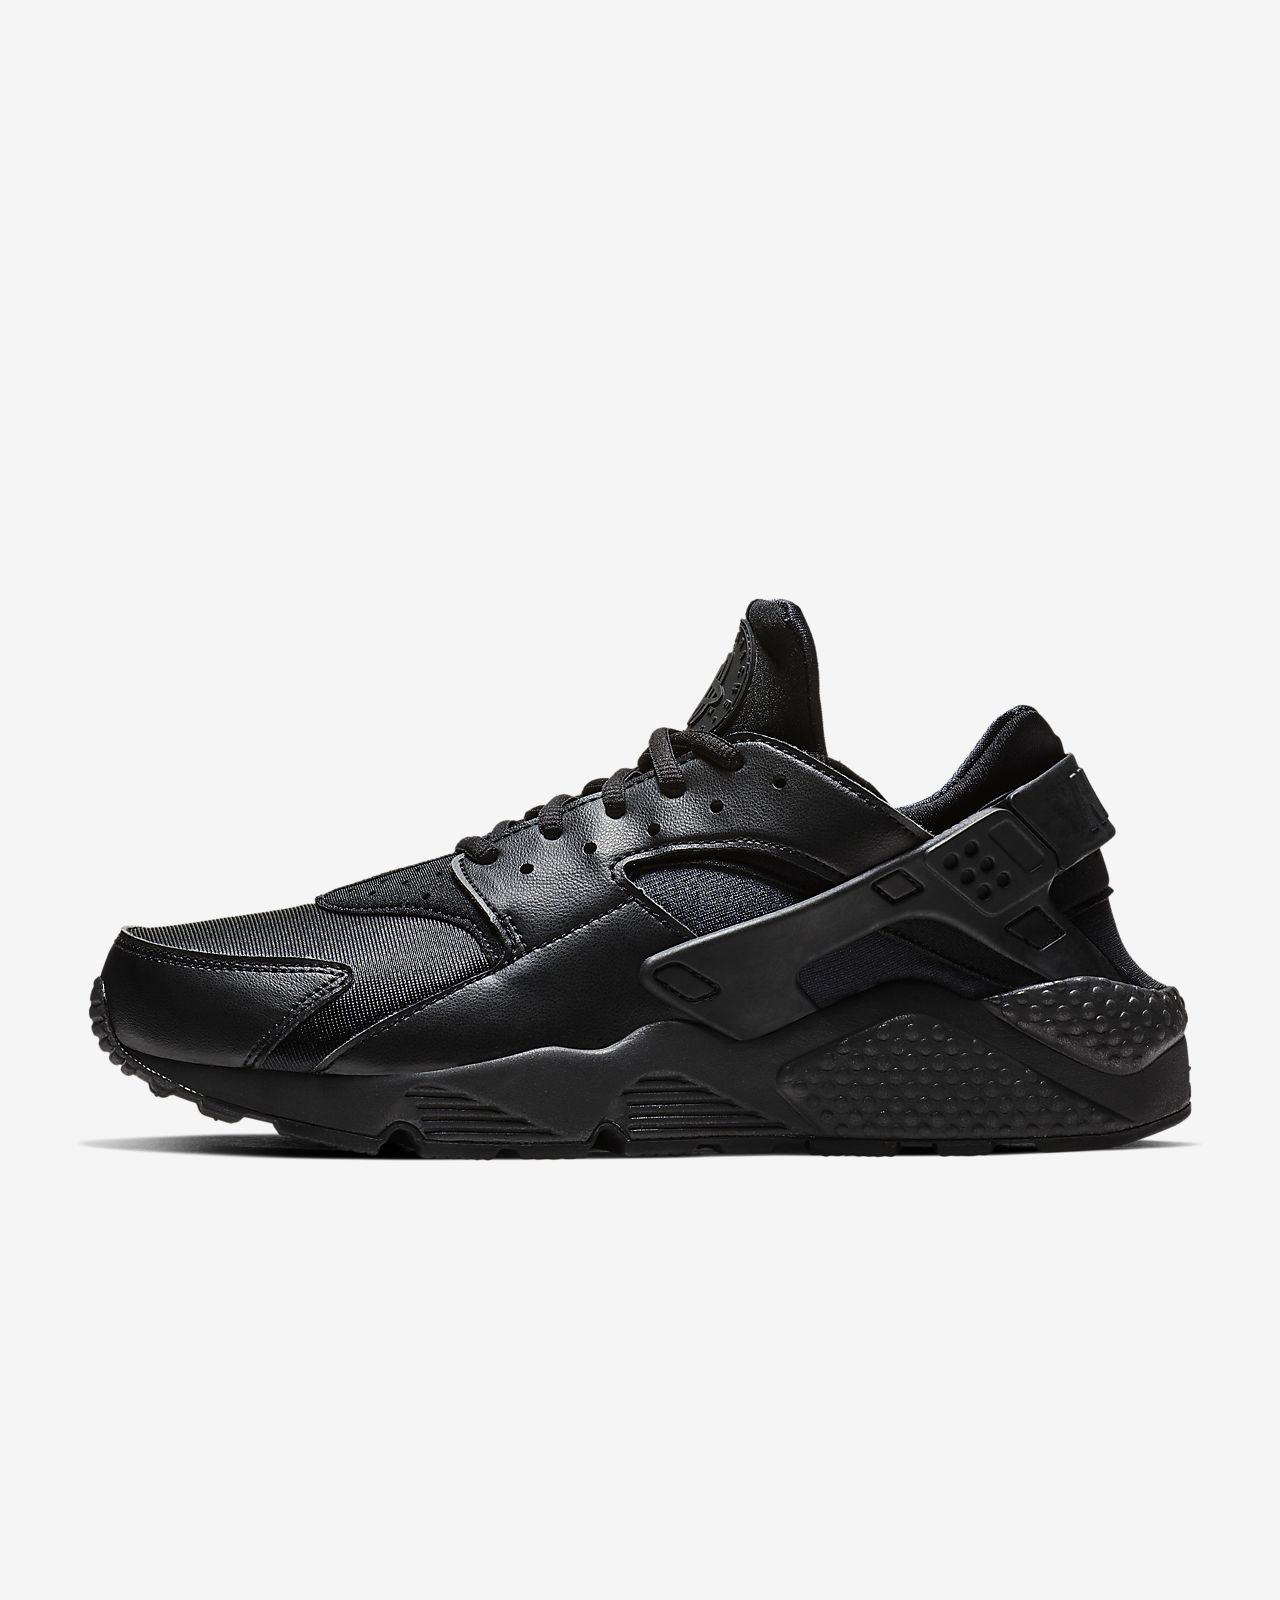 a296bb0dfc22 Nike Air Huarache Women s Shoe. Nike.com